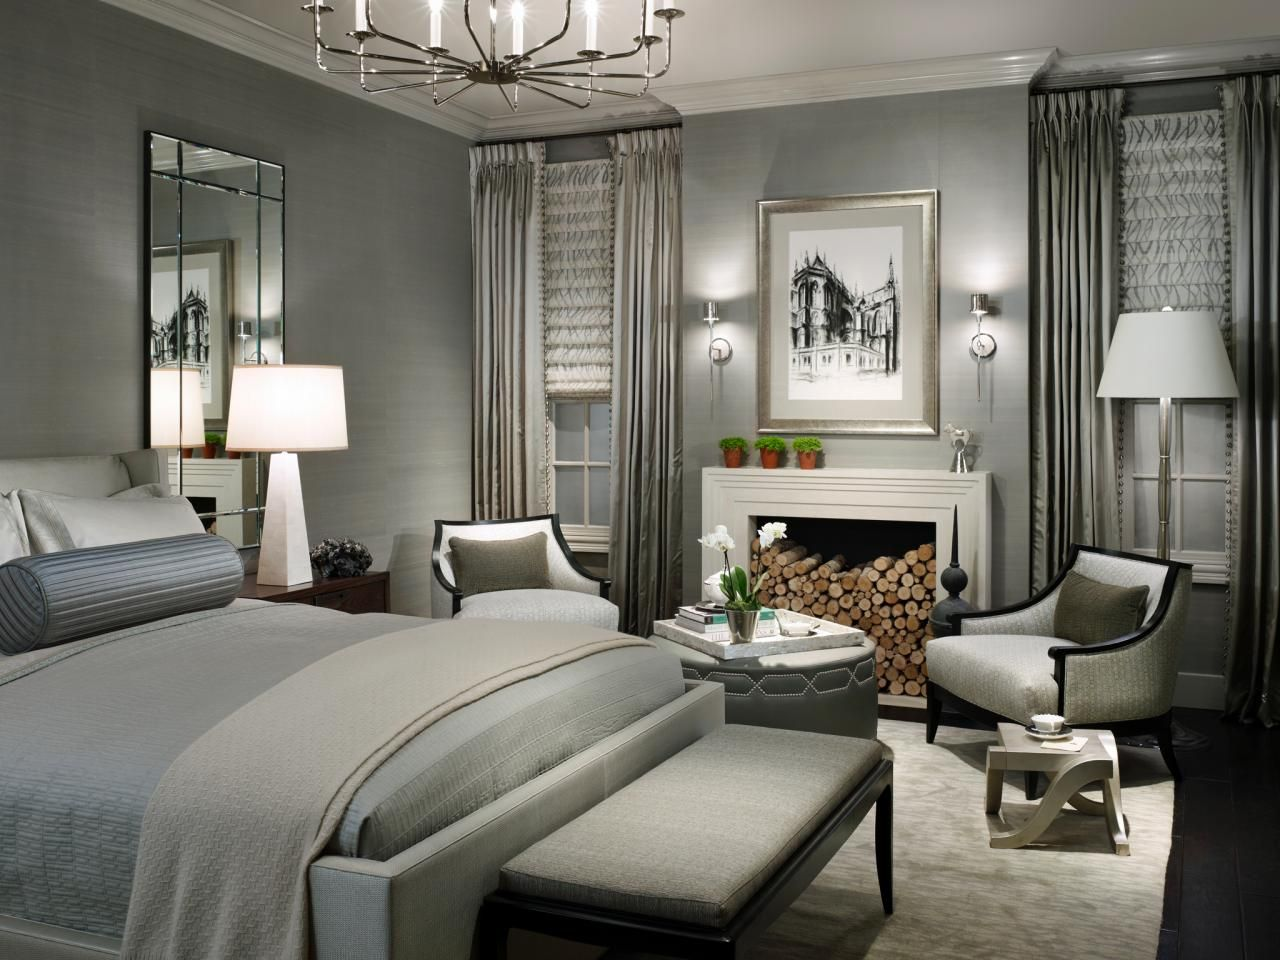 Grey bedrooms hotel style bedrooms master bedrooms hotel inspired bedroom hotel bedroom